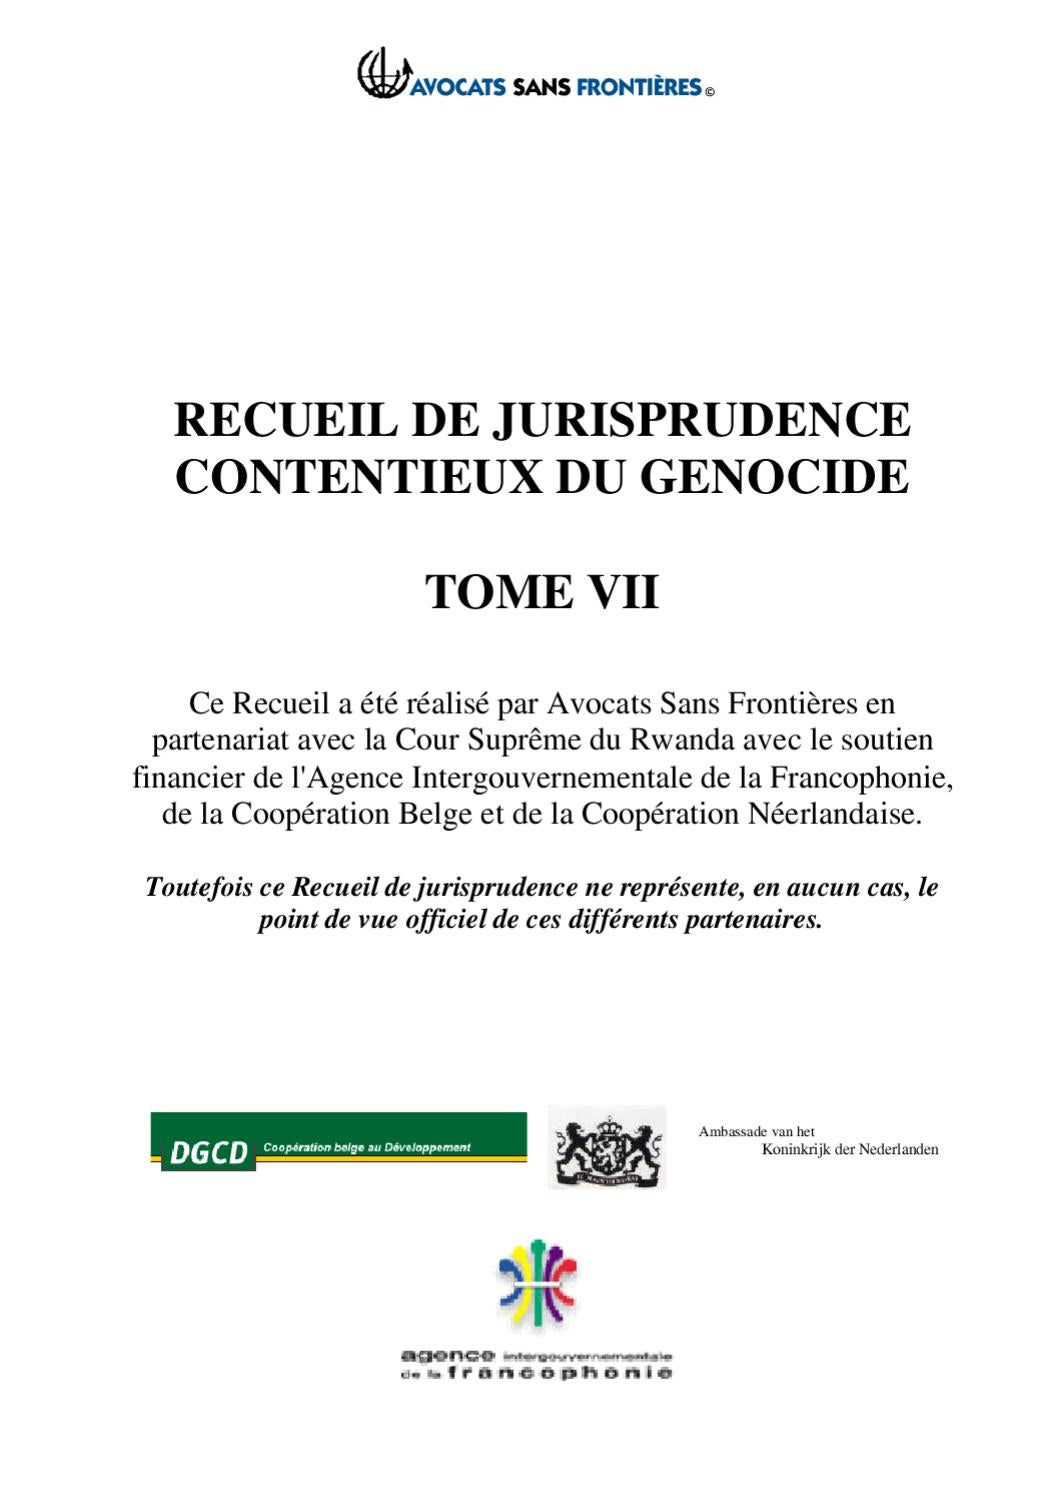 6721778c5c ASF_JurisprudenceGénocide_7 by Avocats Sans Frontieres asbl - issuu